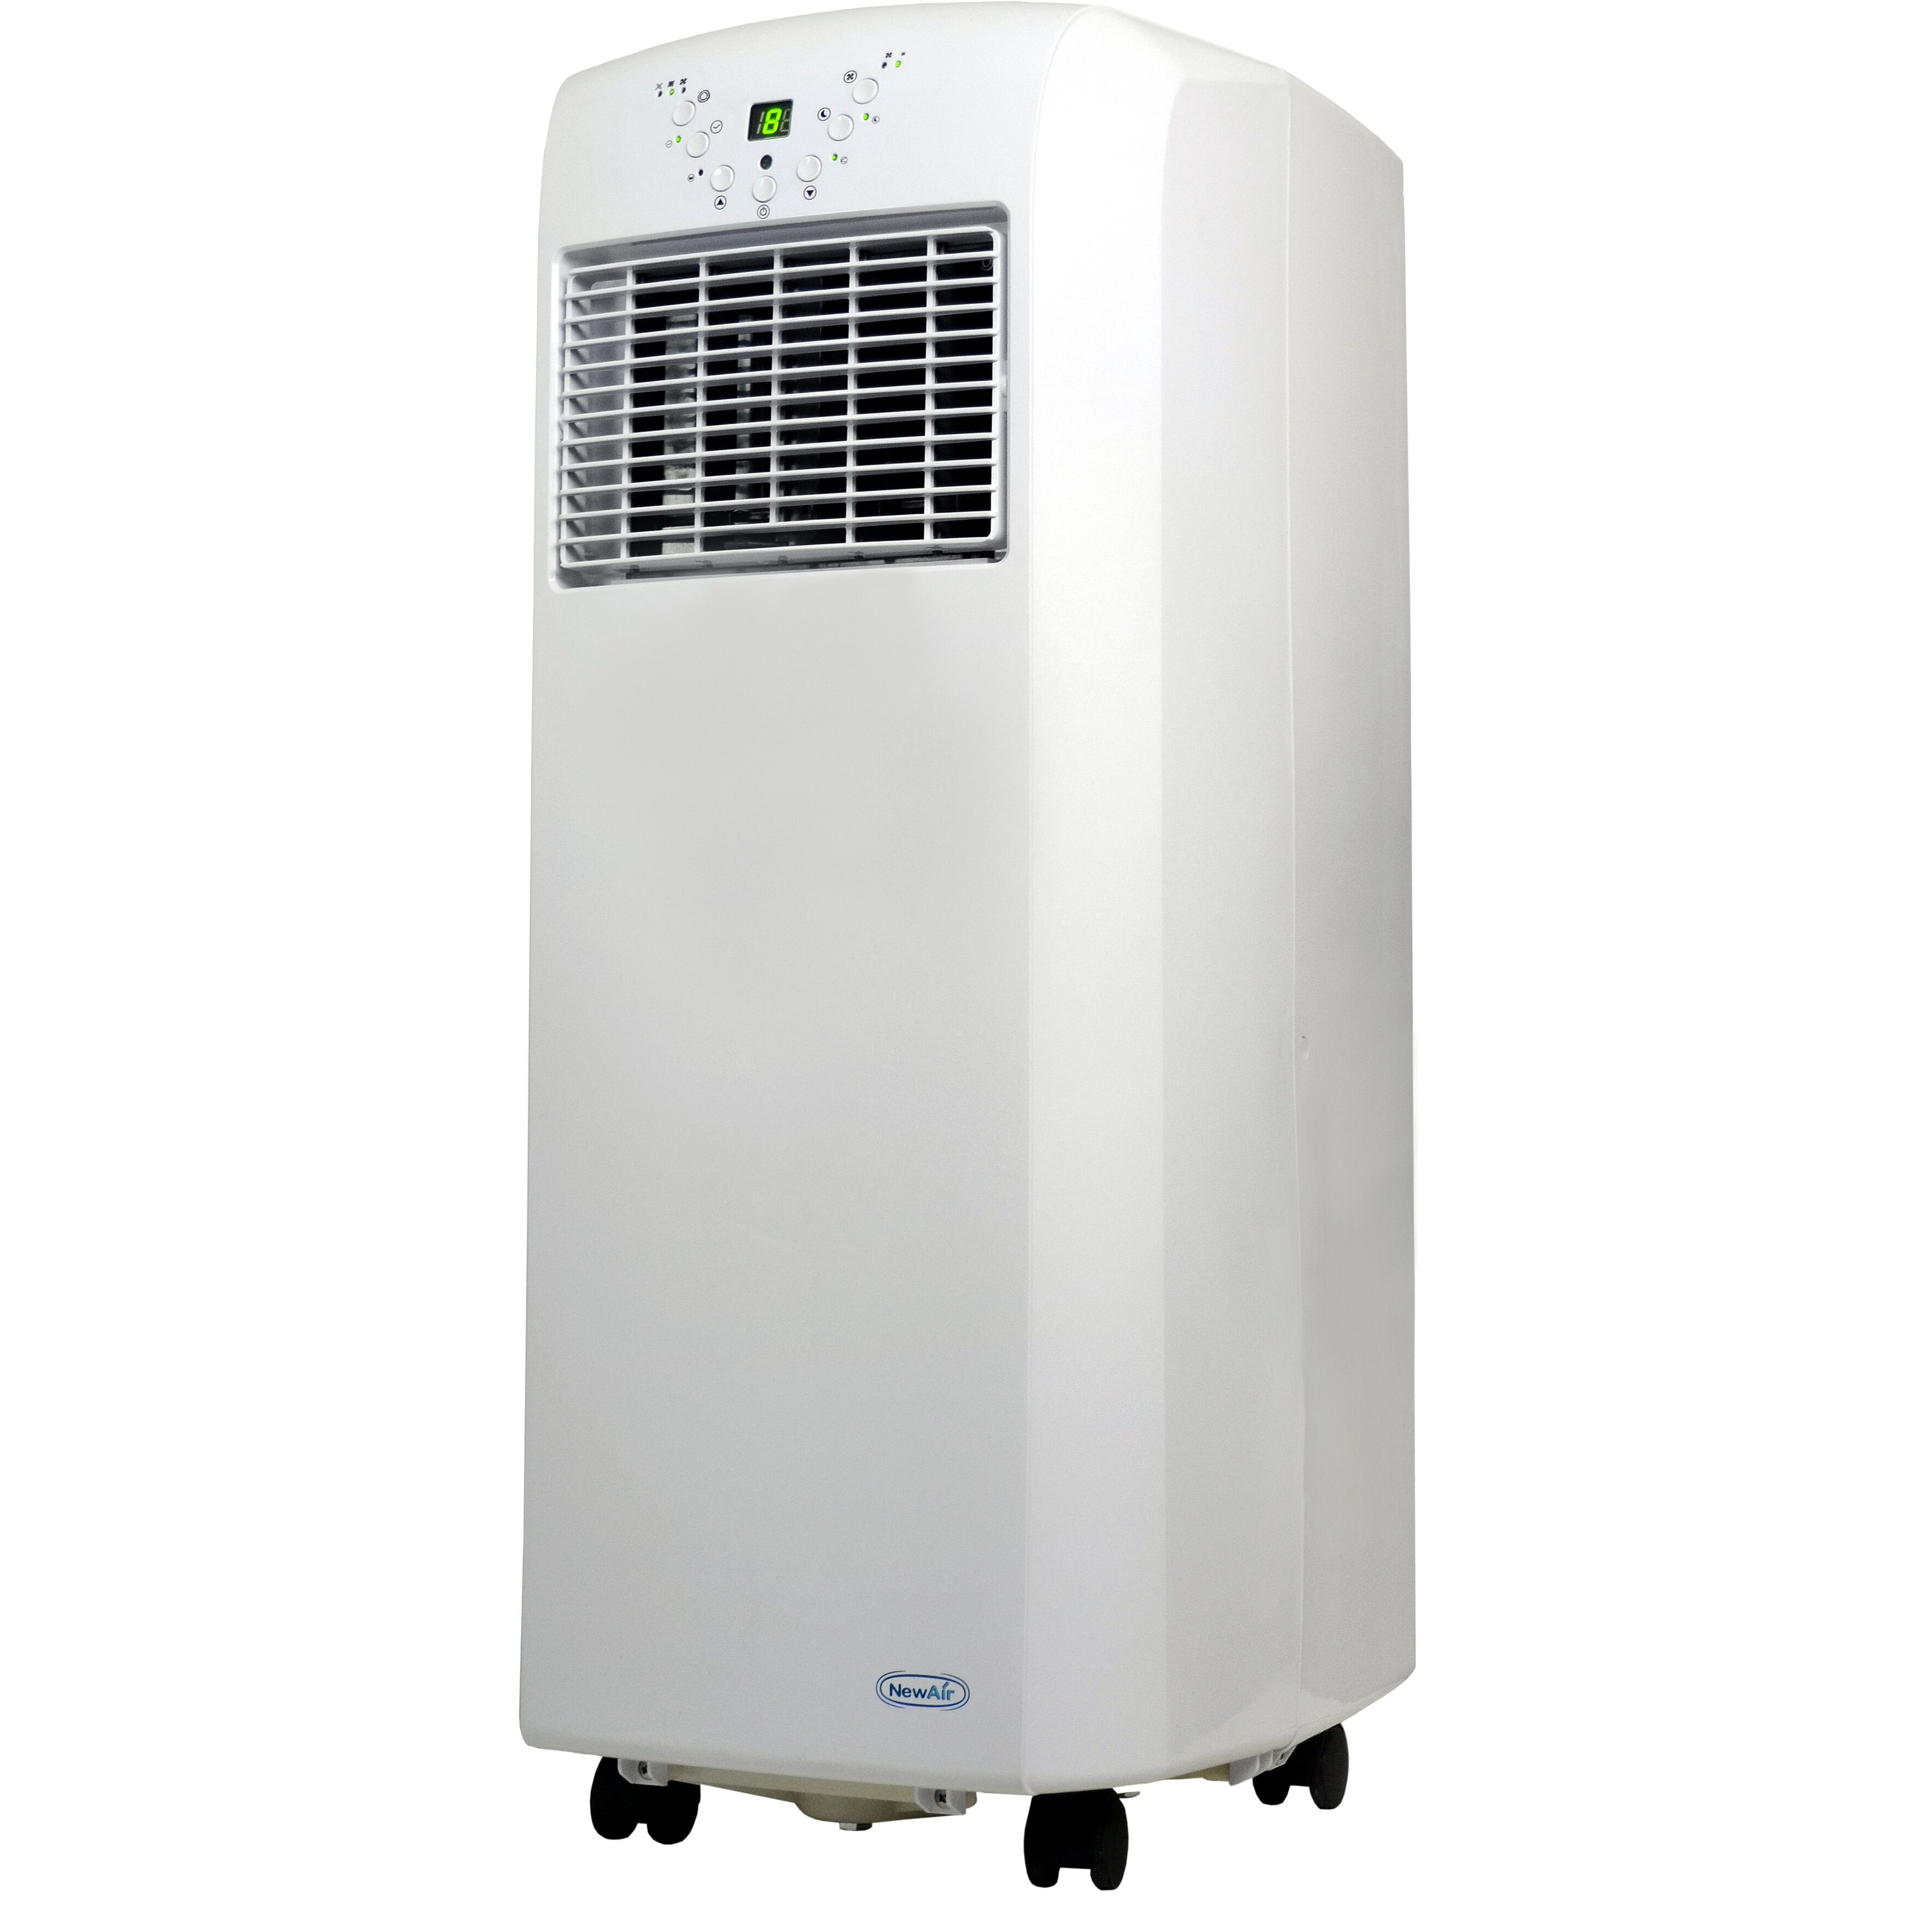 NewAir Ultra Compact 10 000 BTU Portable Air Conditioner with Remote  #61614B